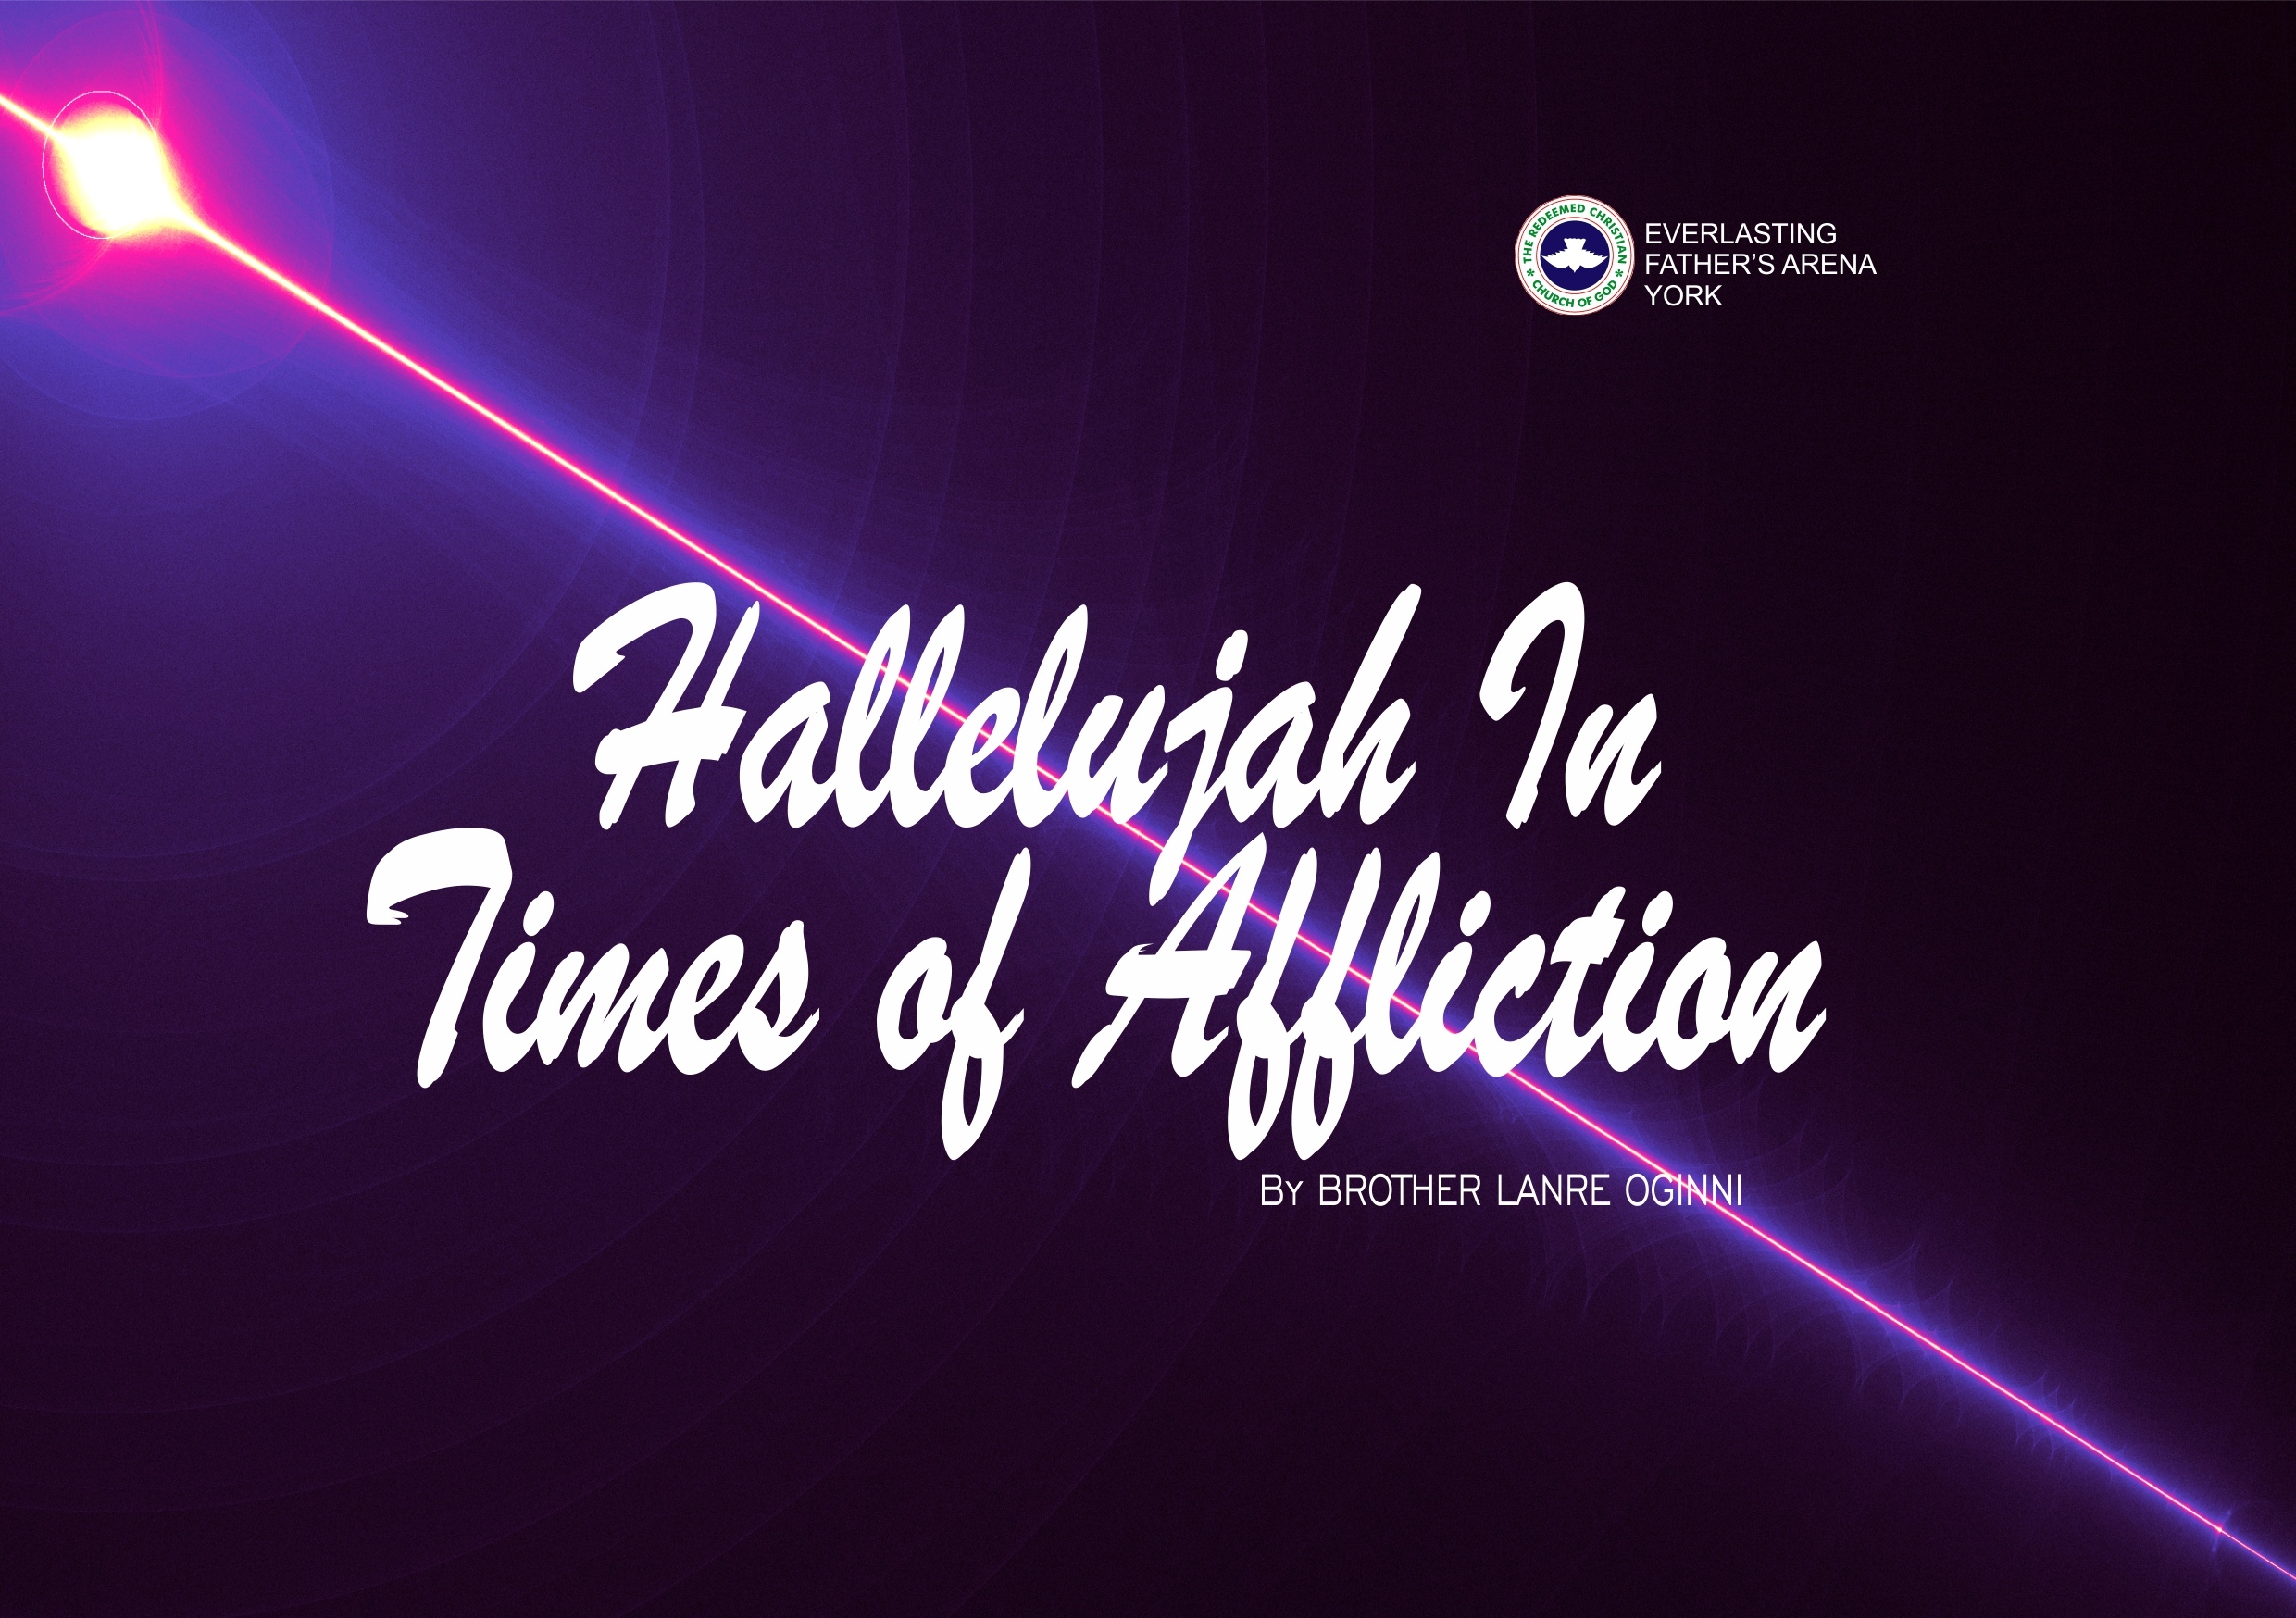 Hallelujah In Times of Affliction, Brother Lanre Oginni